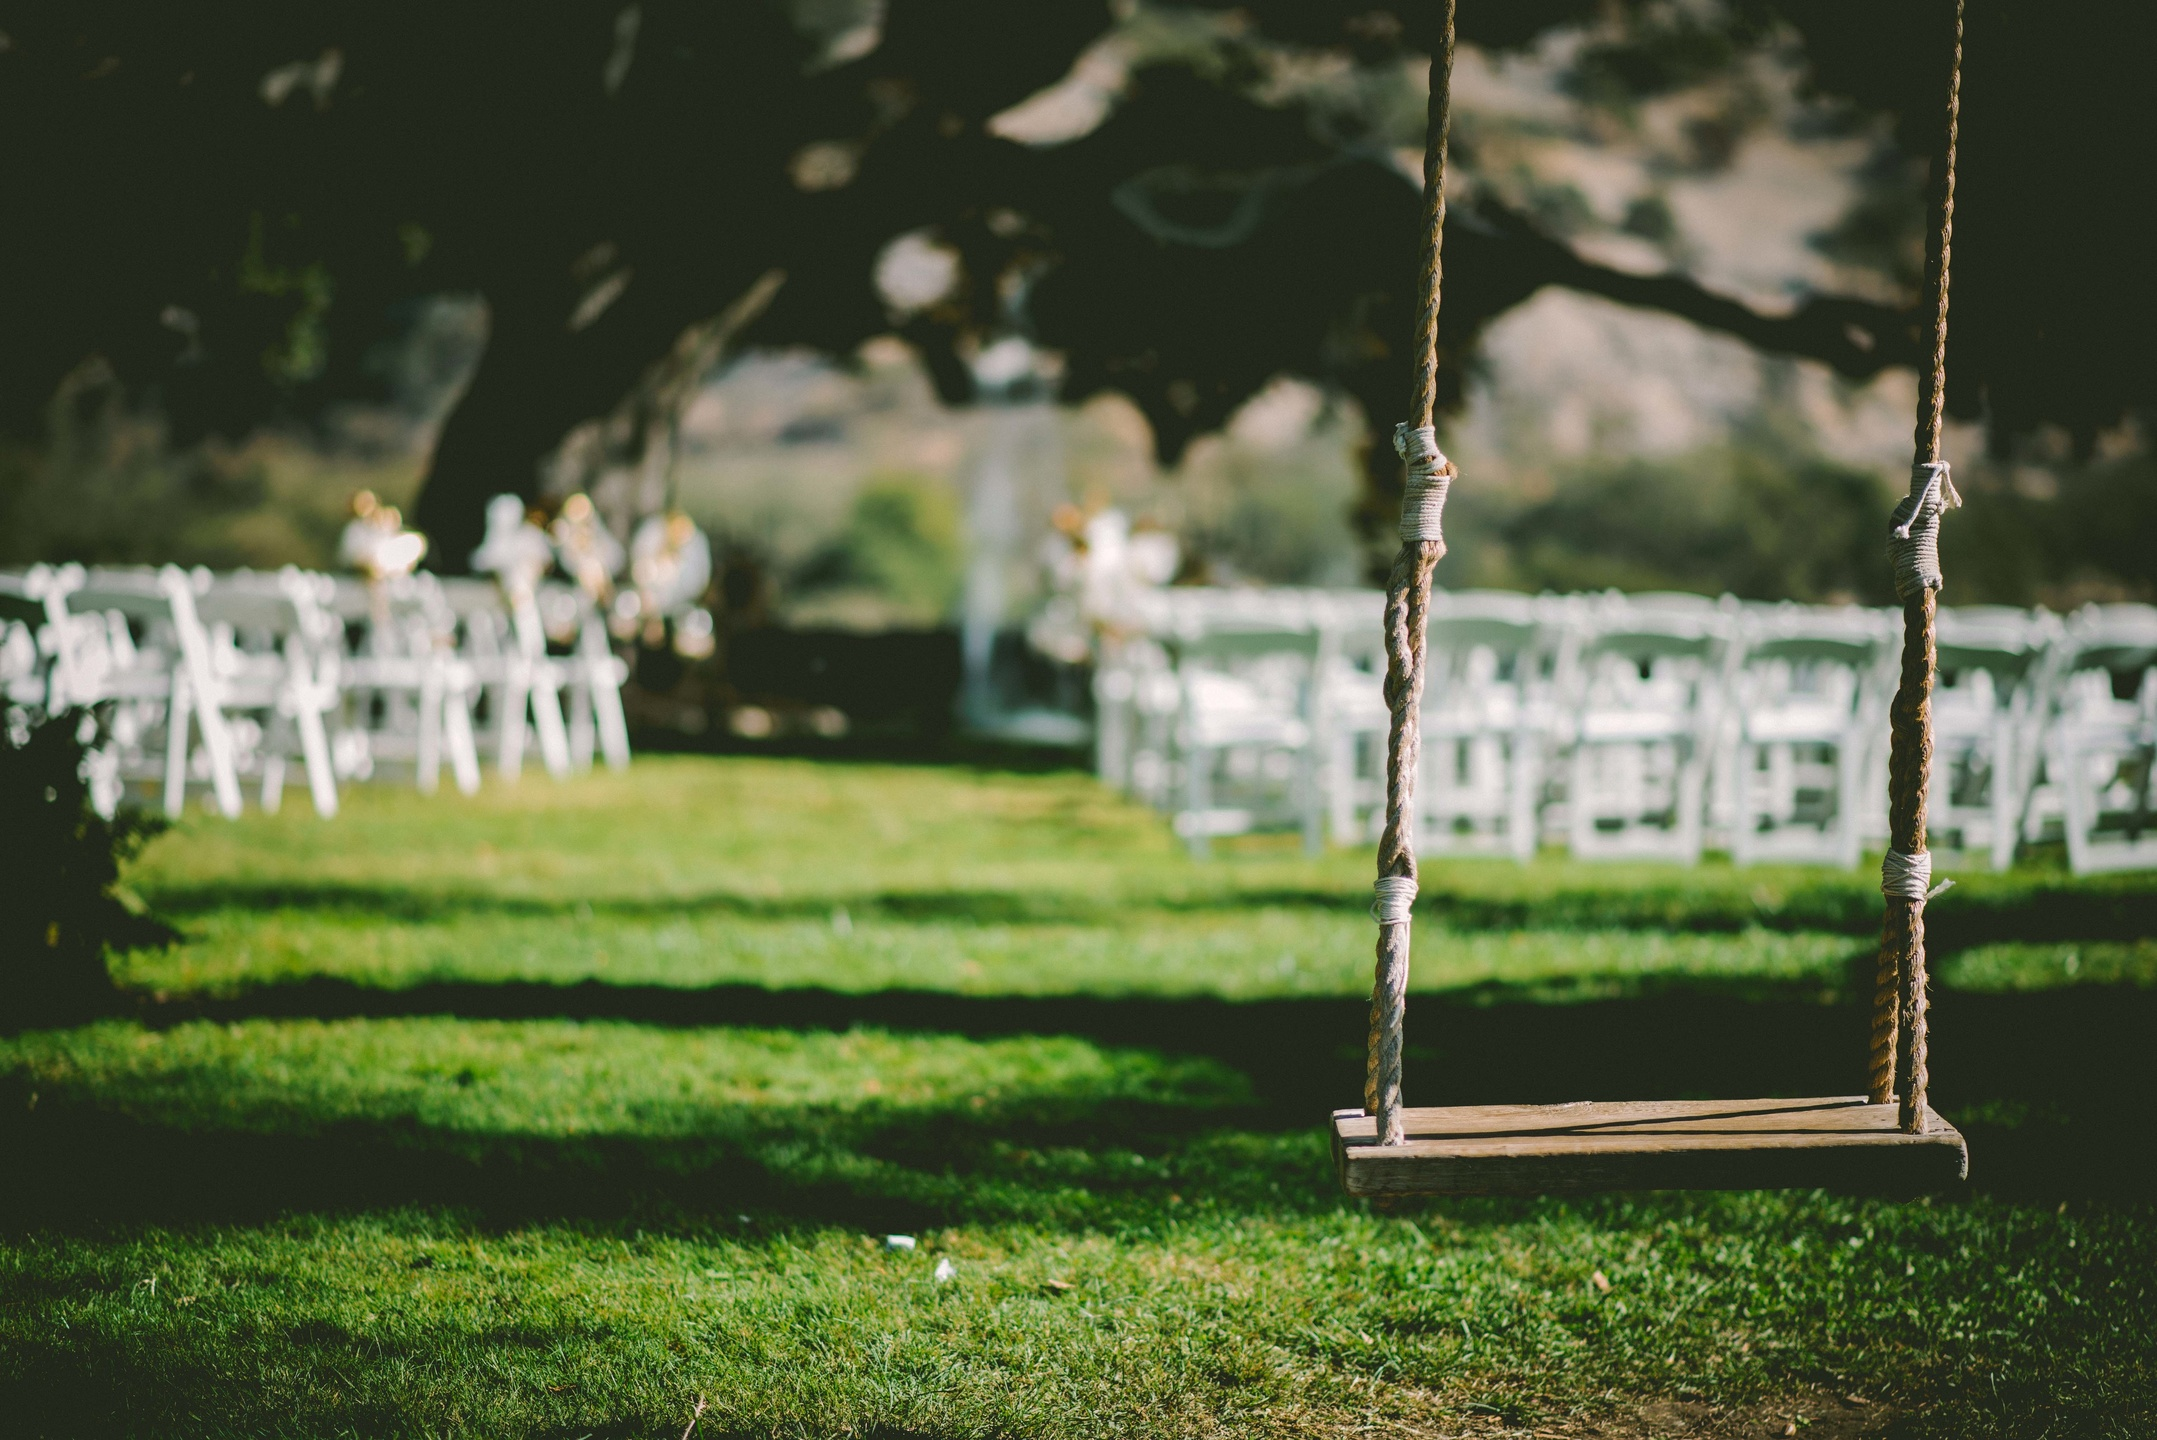 As wedding events drag on for months, emotional and financial costs rise for guests